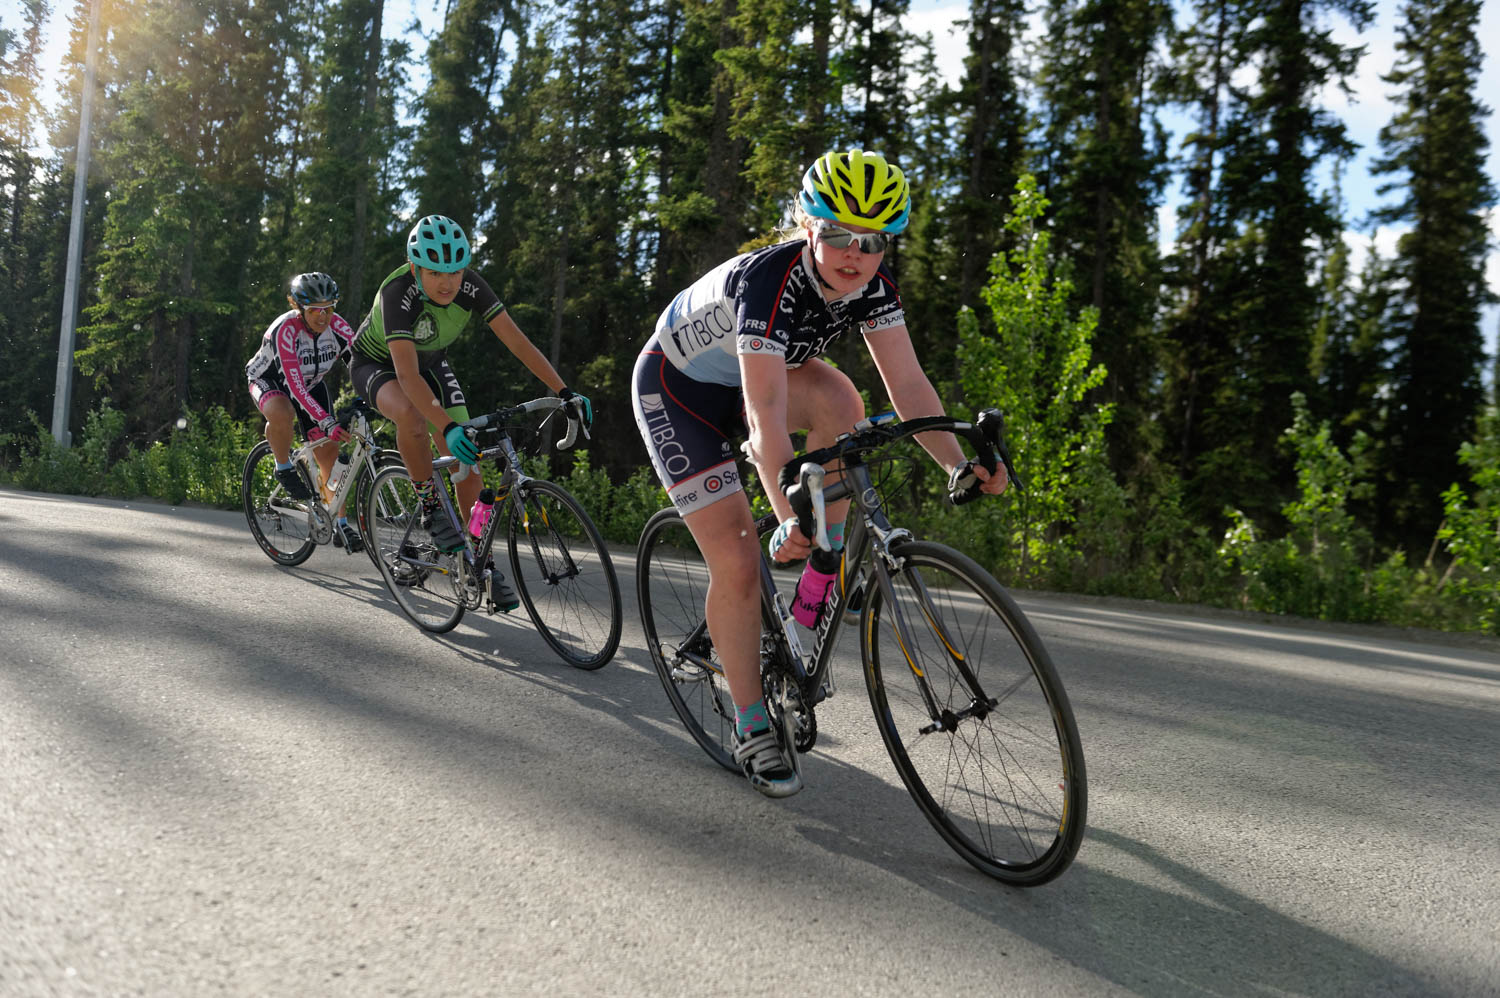 Tori, Mathilde and coach Trena racing the Crit on Friday night.